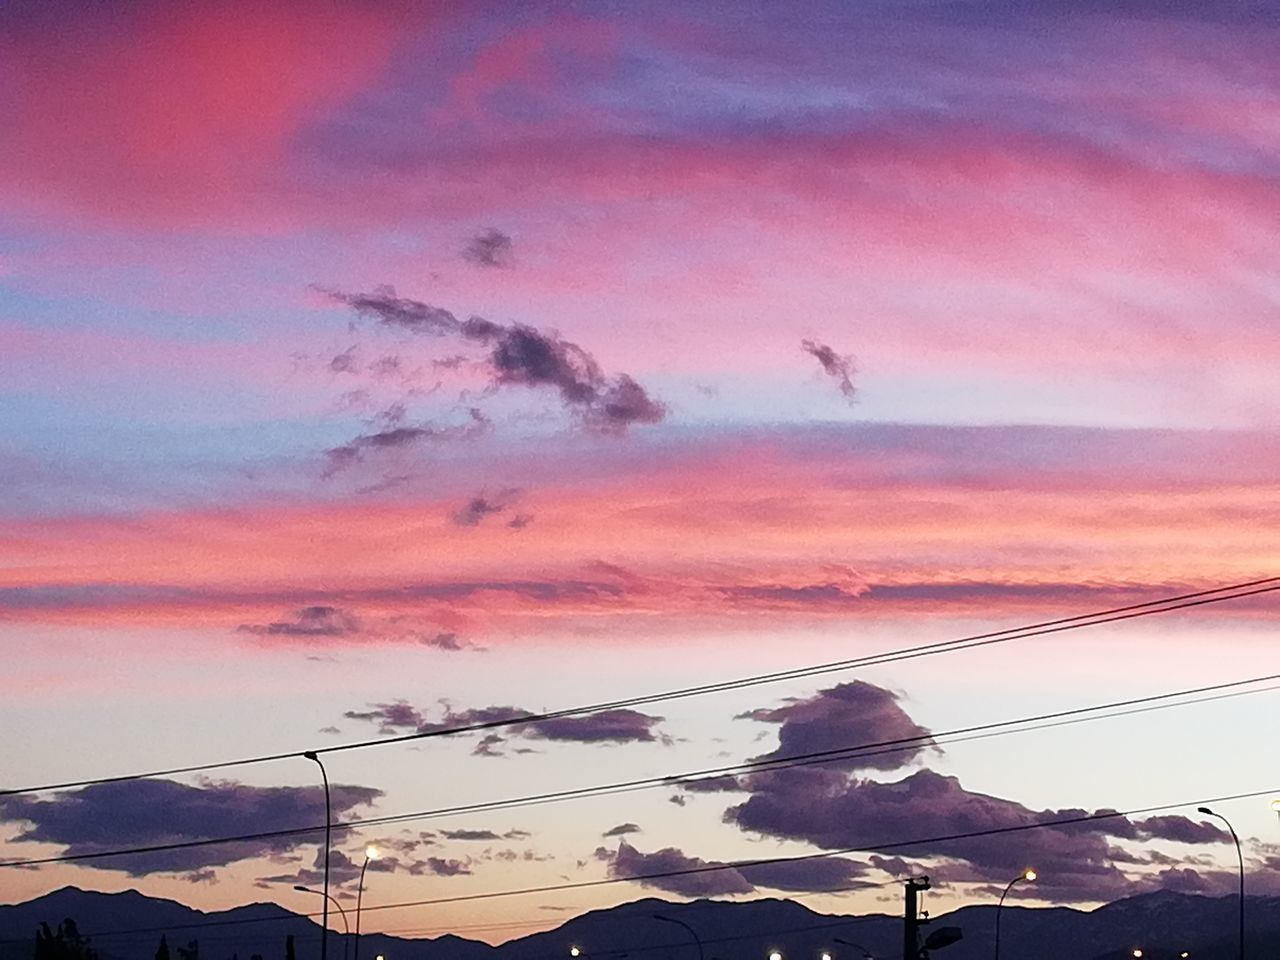 sunset, sky, cloud - sky, nature, beauty in nature, no people, scenics, outdoors, silhouette, mountain, cable, animal themes, electricity pylon, vapor trail, bird, day, mammal